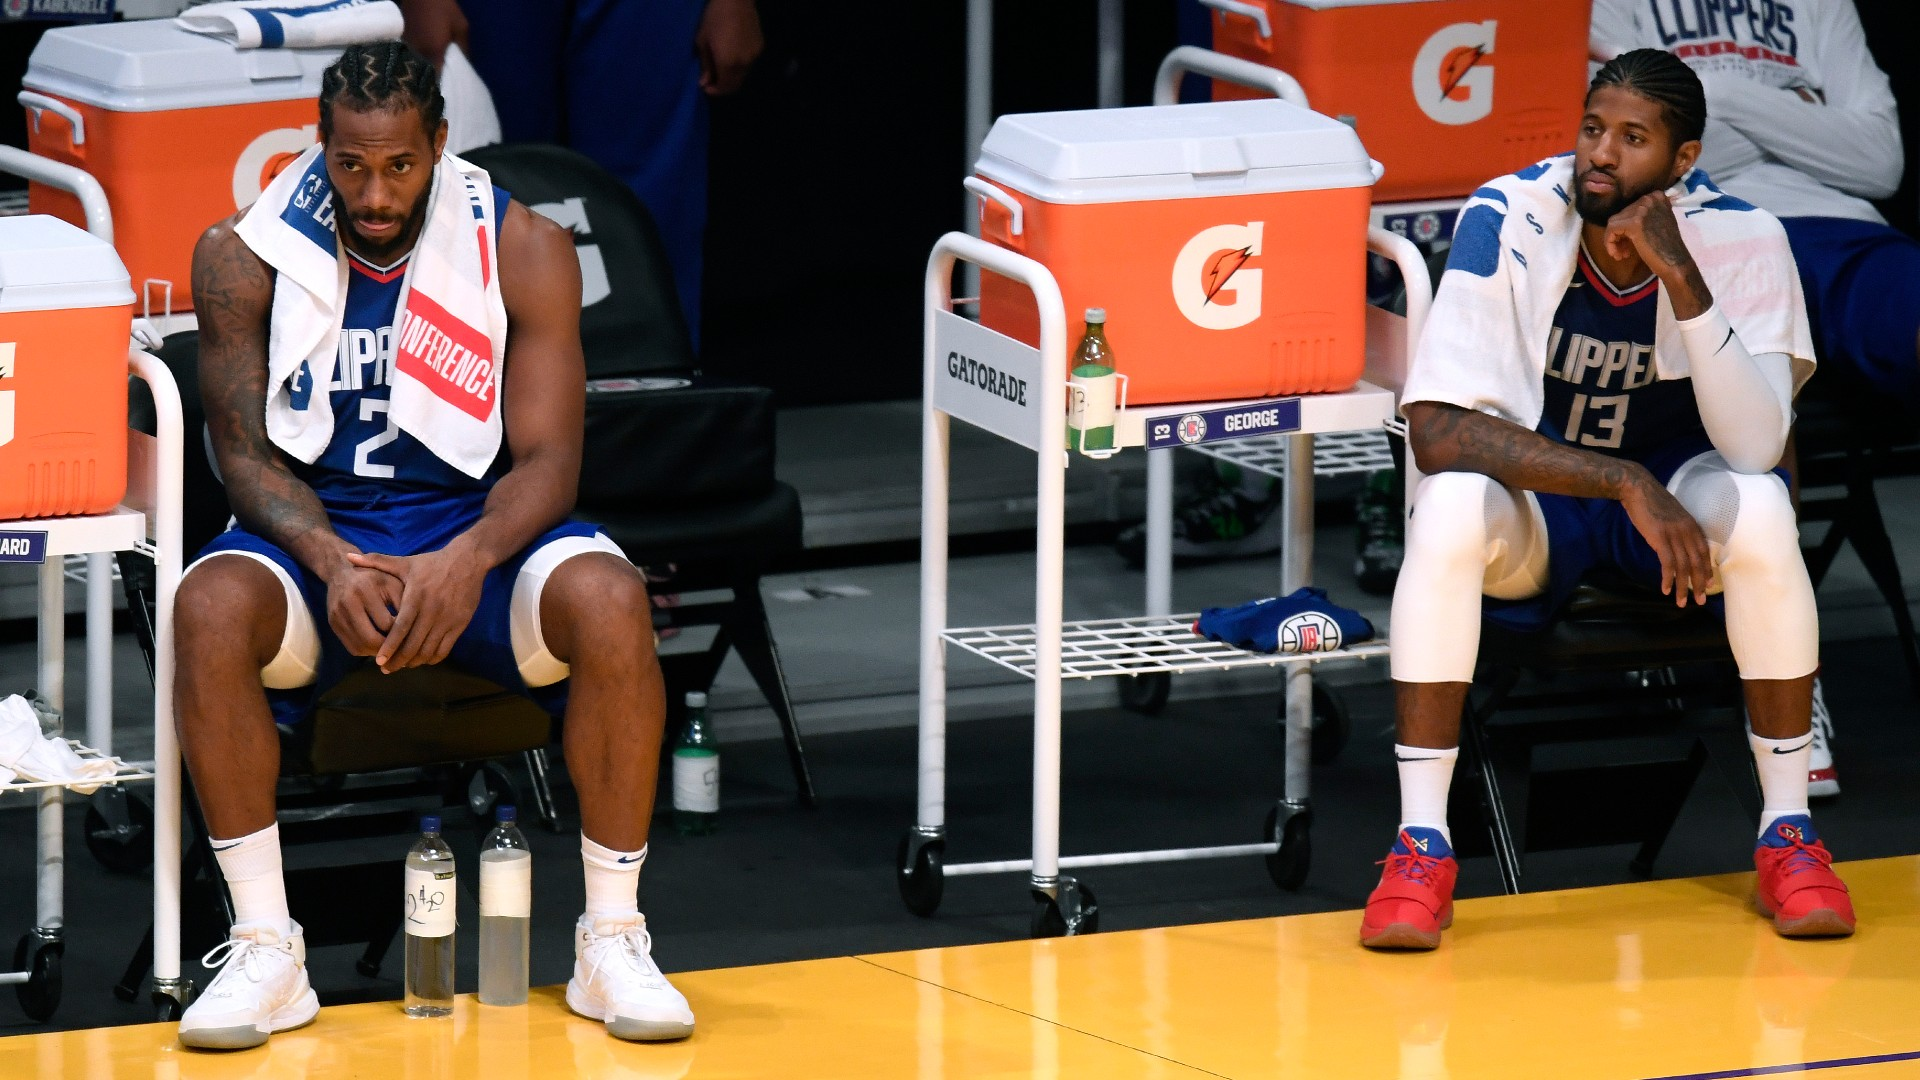 Clippers pair George, Ibaka join Kawhi on sidelines against Pistons